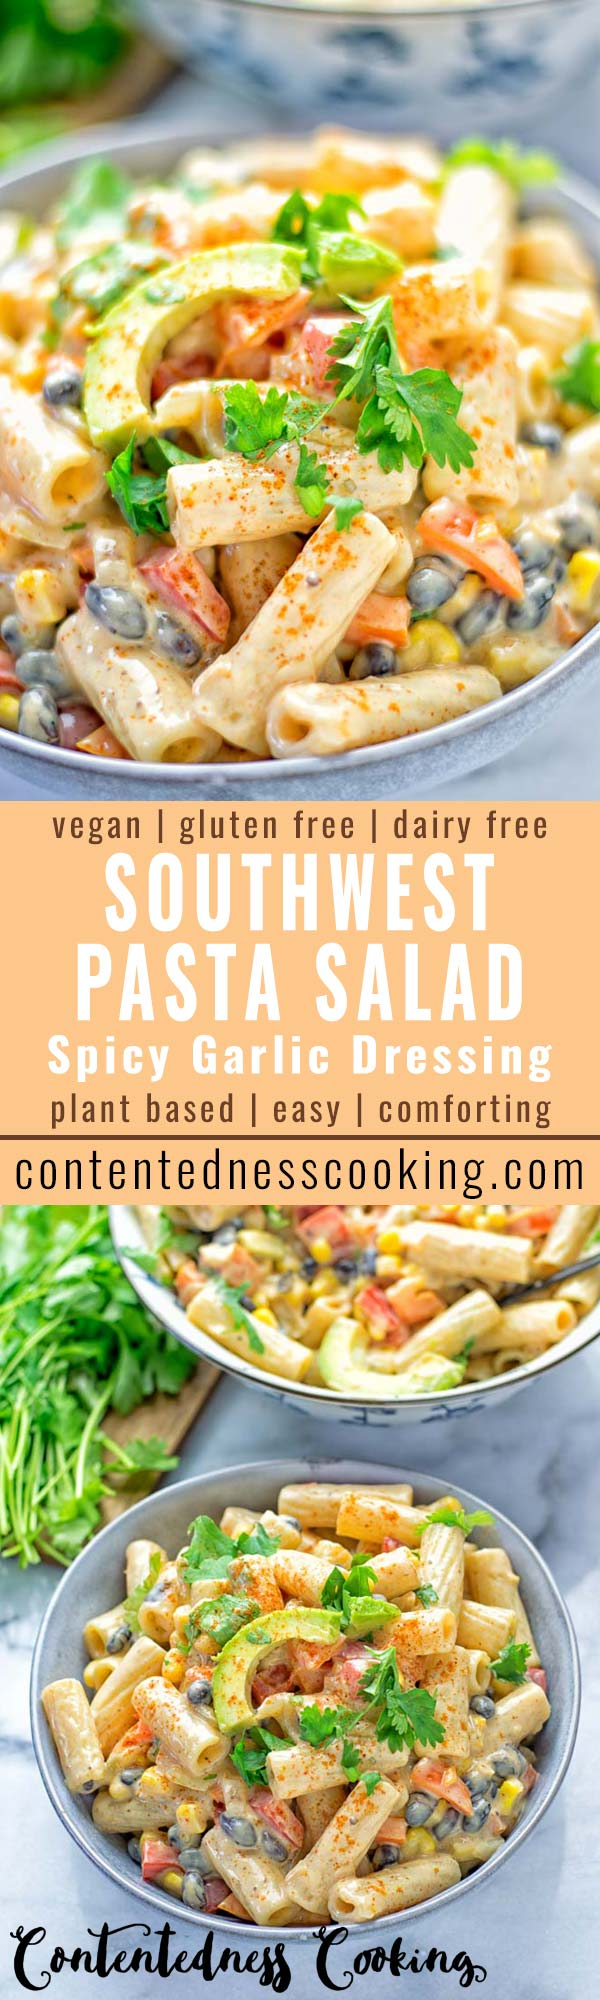 Southwest Pasta Salad with Spicy Garlic Dressing | #vegan #glutenfree #contentednesscooking #dairyfree #plantbased